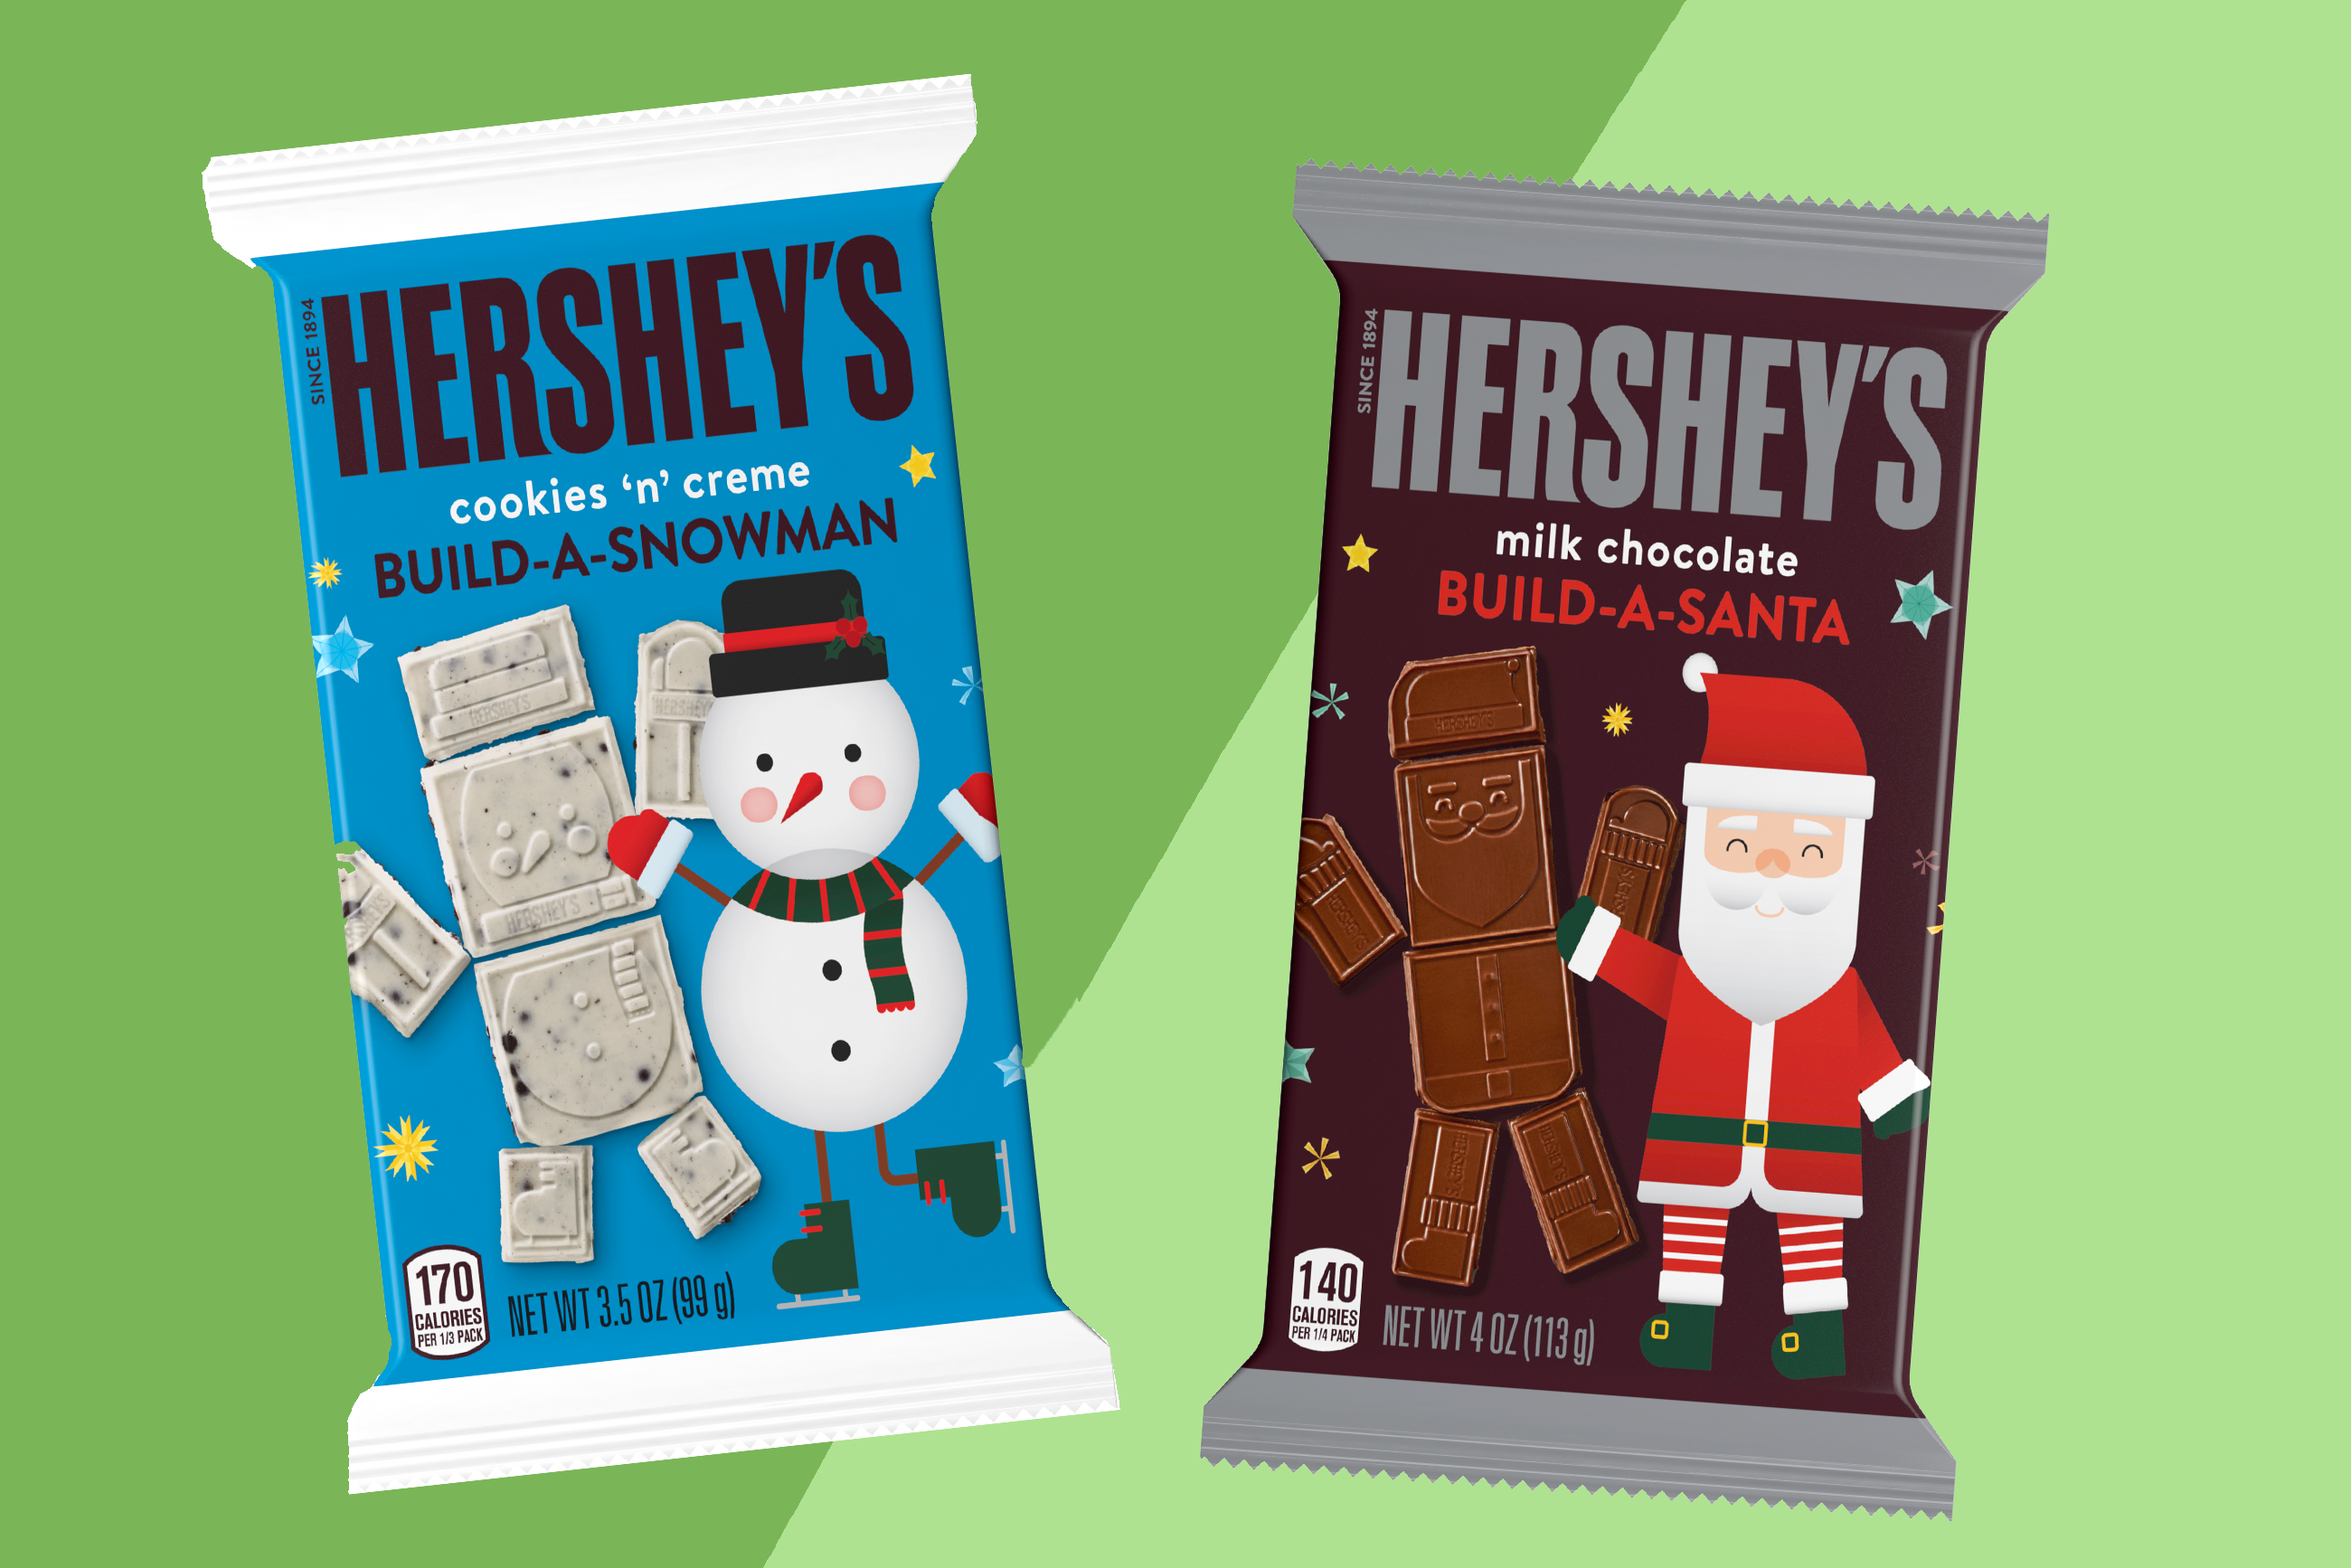 Hershey's Milk Chocolate Build-a-Santa and Hershey's Cookies 'N' Cream Build-a-Snowman